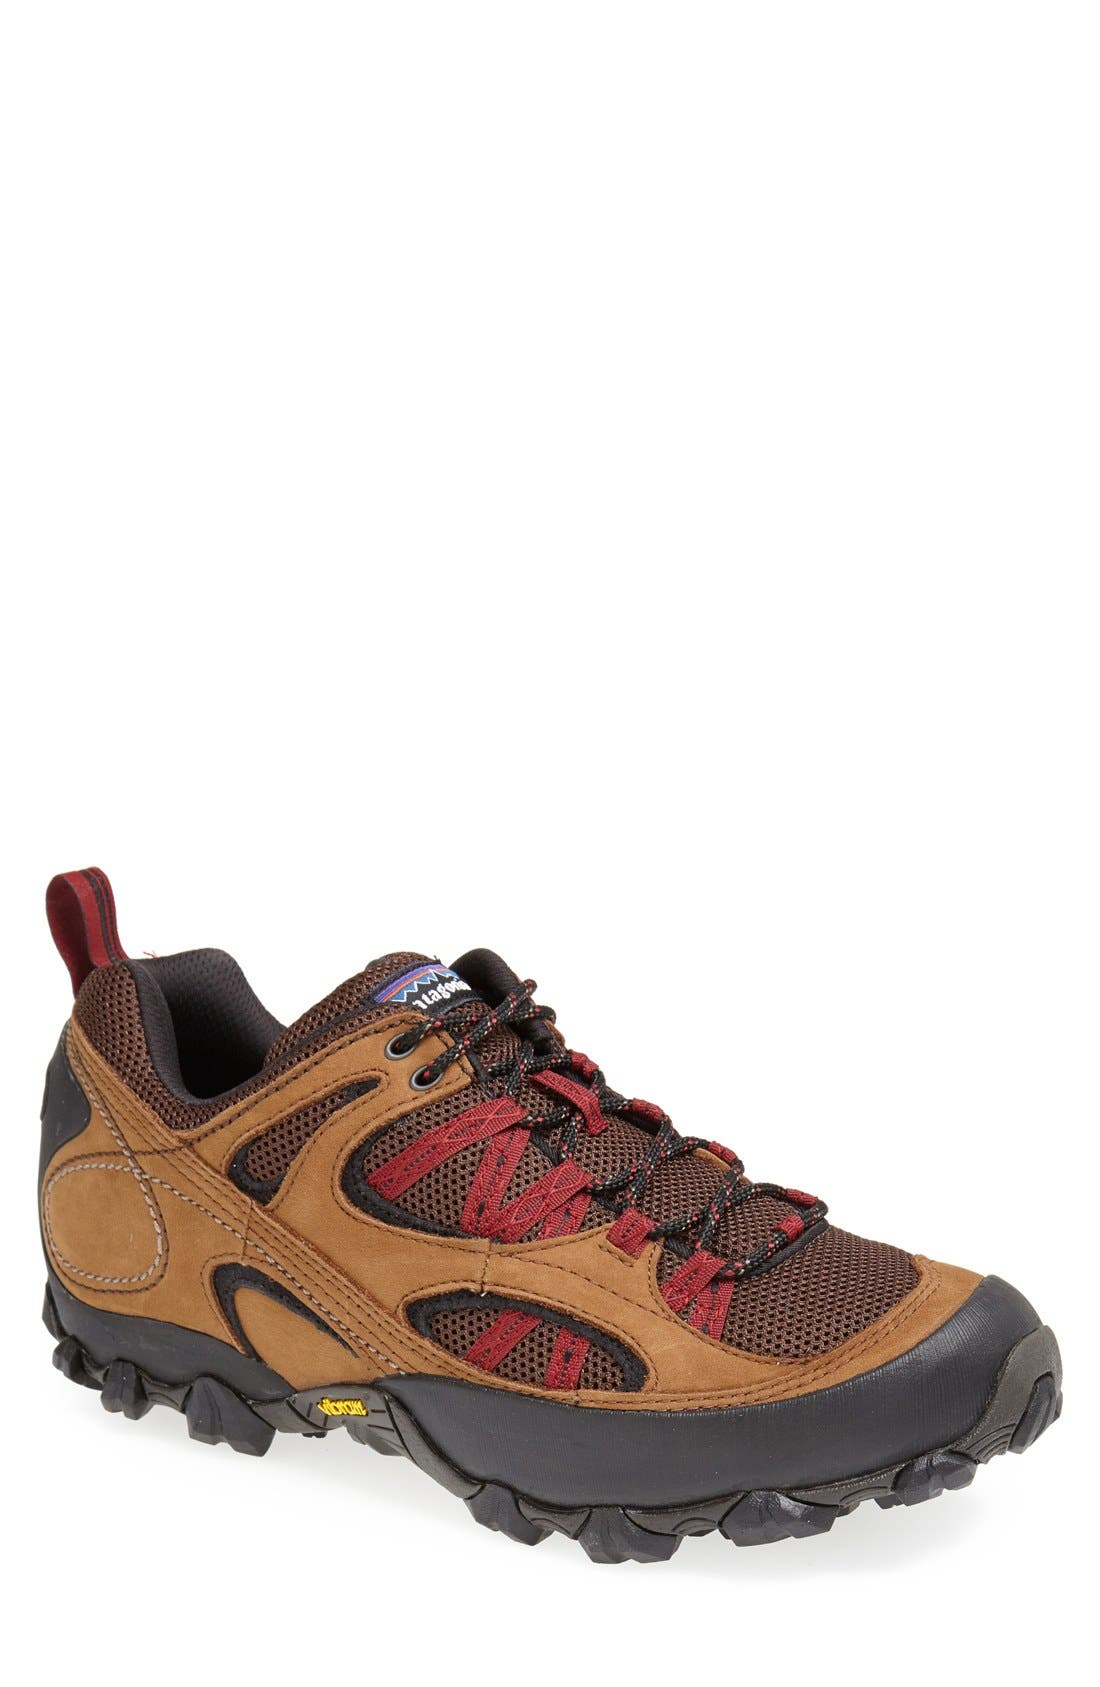 Alternate Image 1 Selected - Patagonia 'Drifter A/C' Trail Shoe (Men)